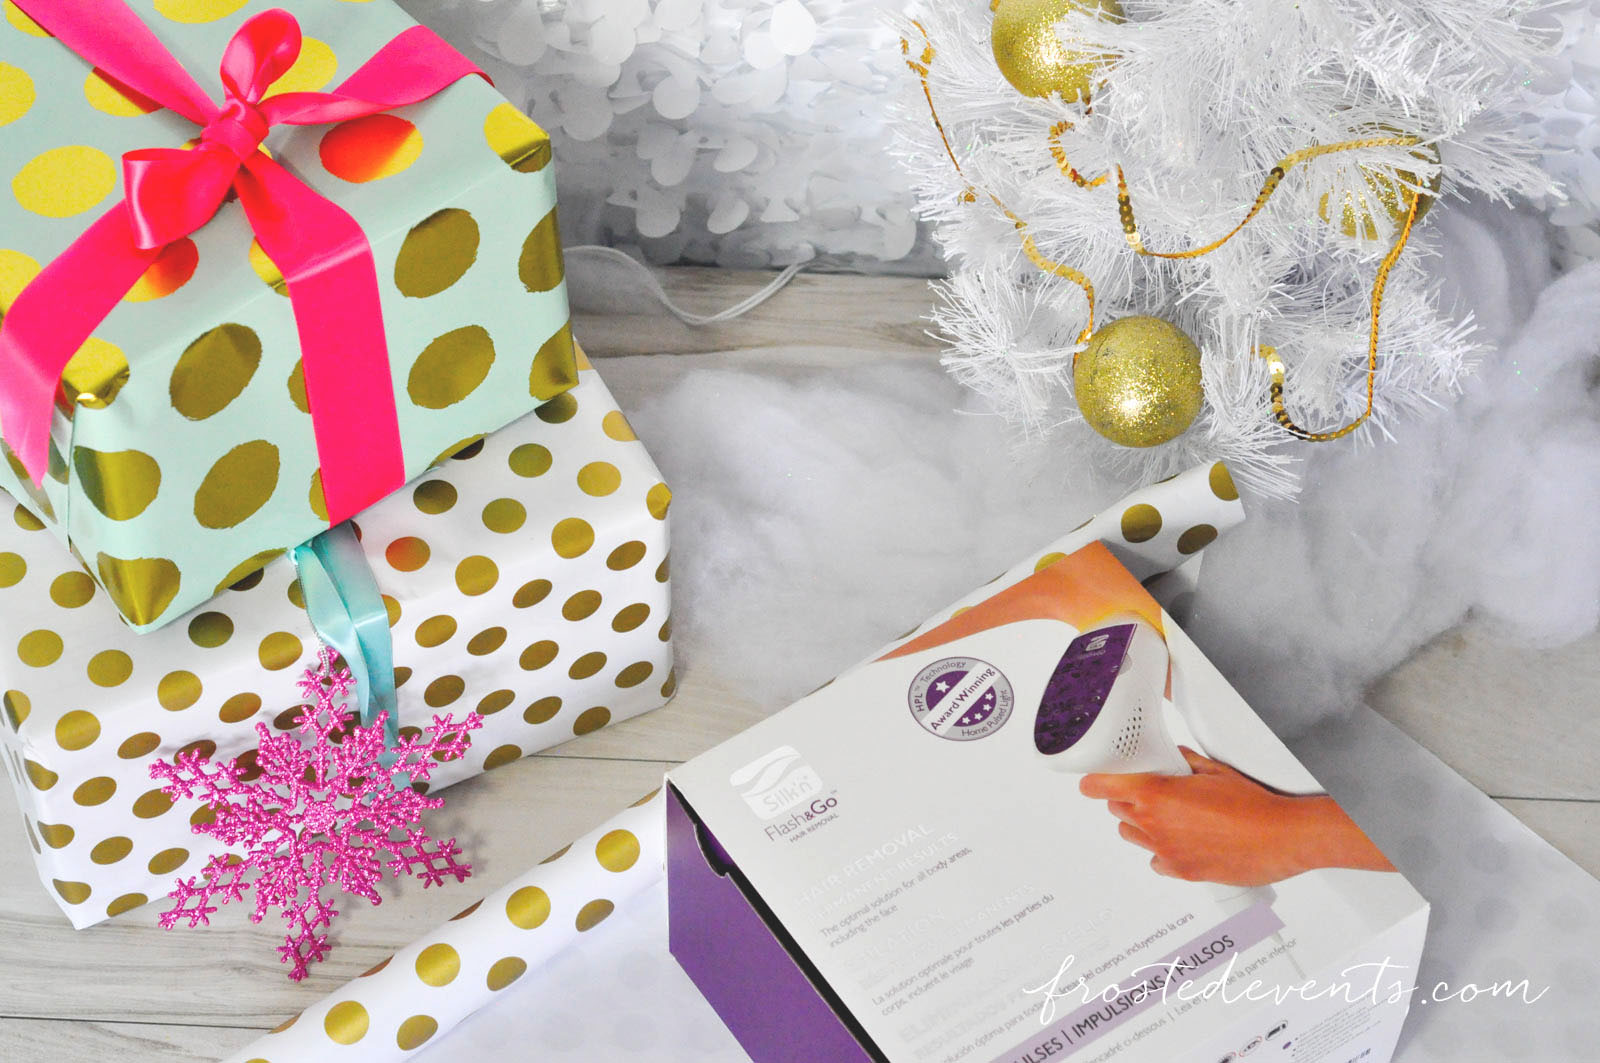 GIft Wrapping Ideas for Christmas Flash&Go Perfect Gift for Her frostedevents.com